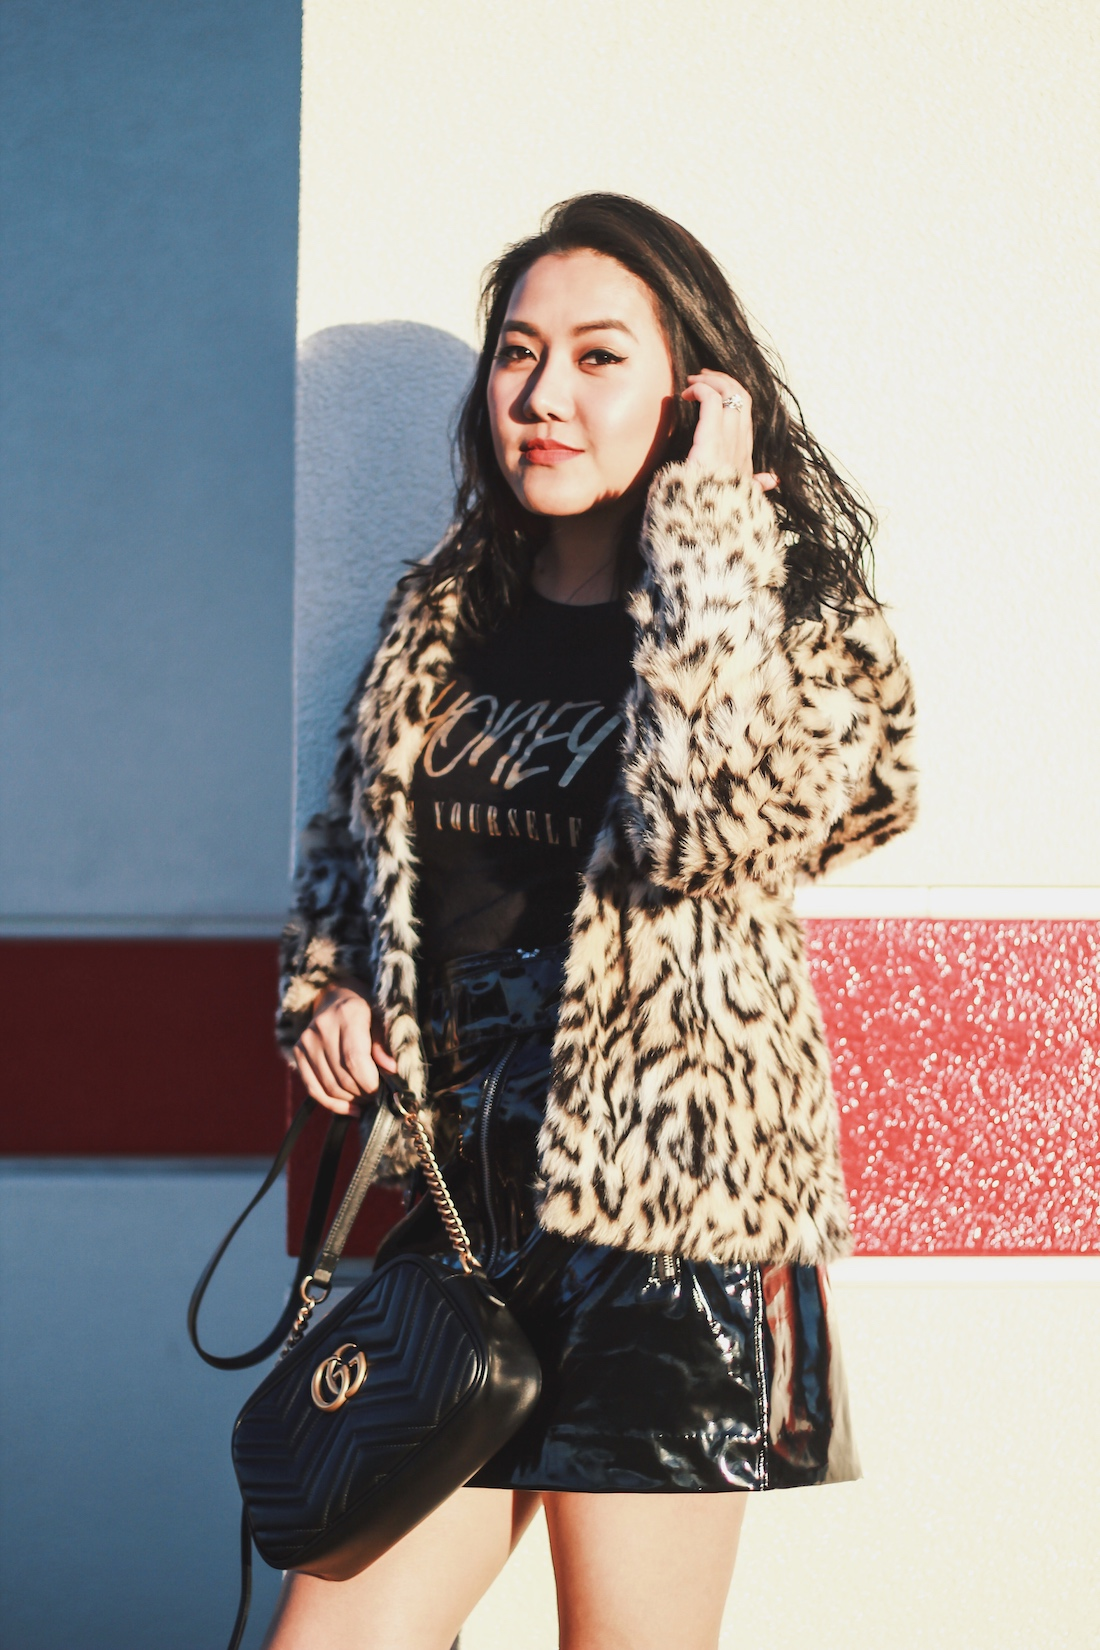 Winter-Outfit-Honey-Be-Yourself-Graphic-Tee-Allaboutgoodvibes.com-Molly Larsen- Fashion Blogger